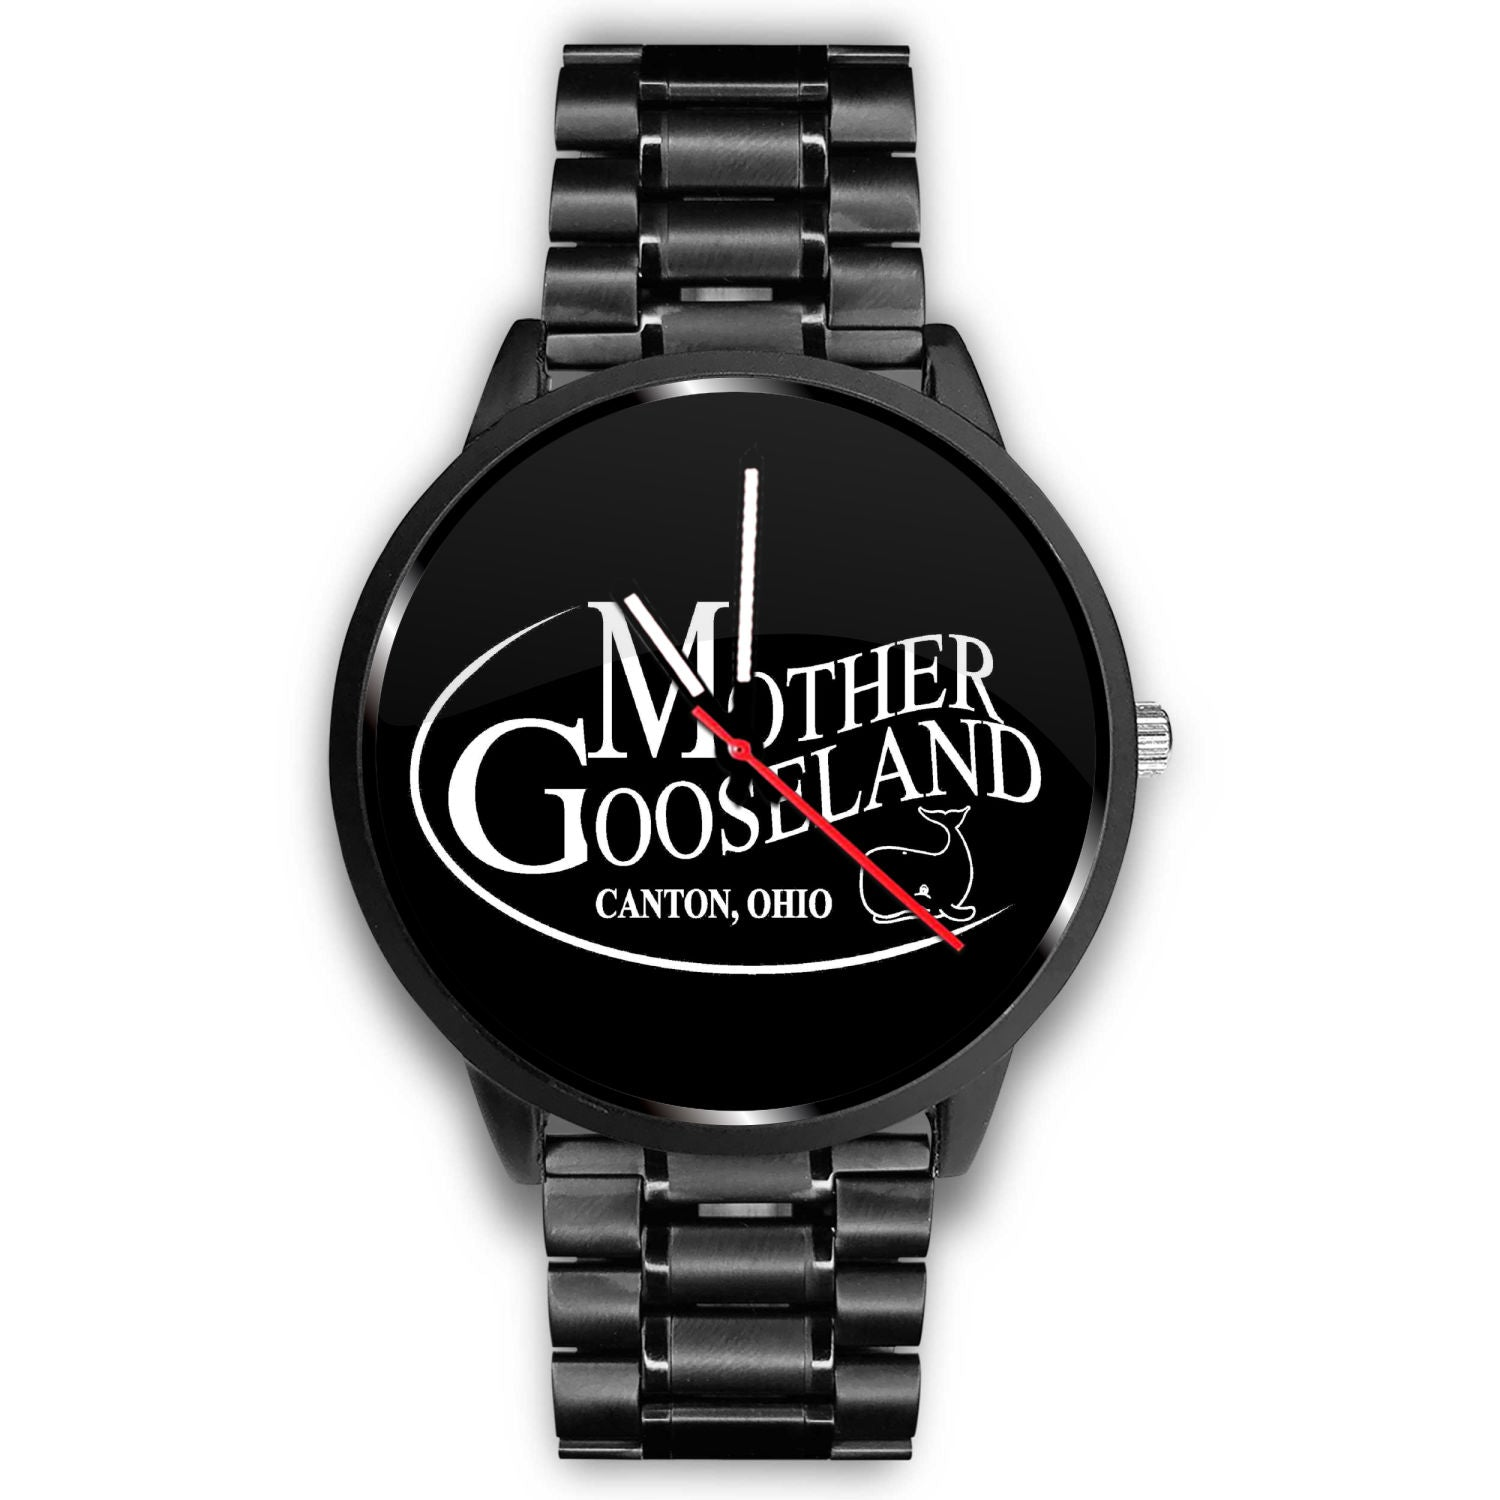 MOTHER GOOSELAND Watch